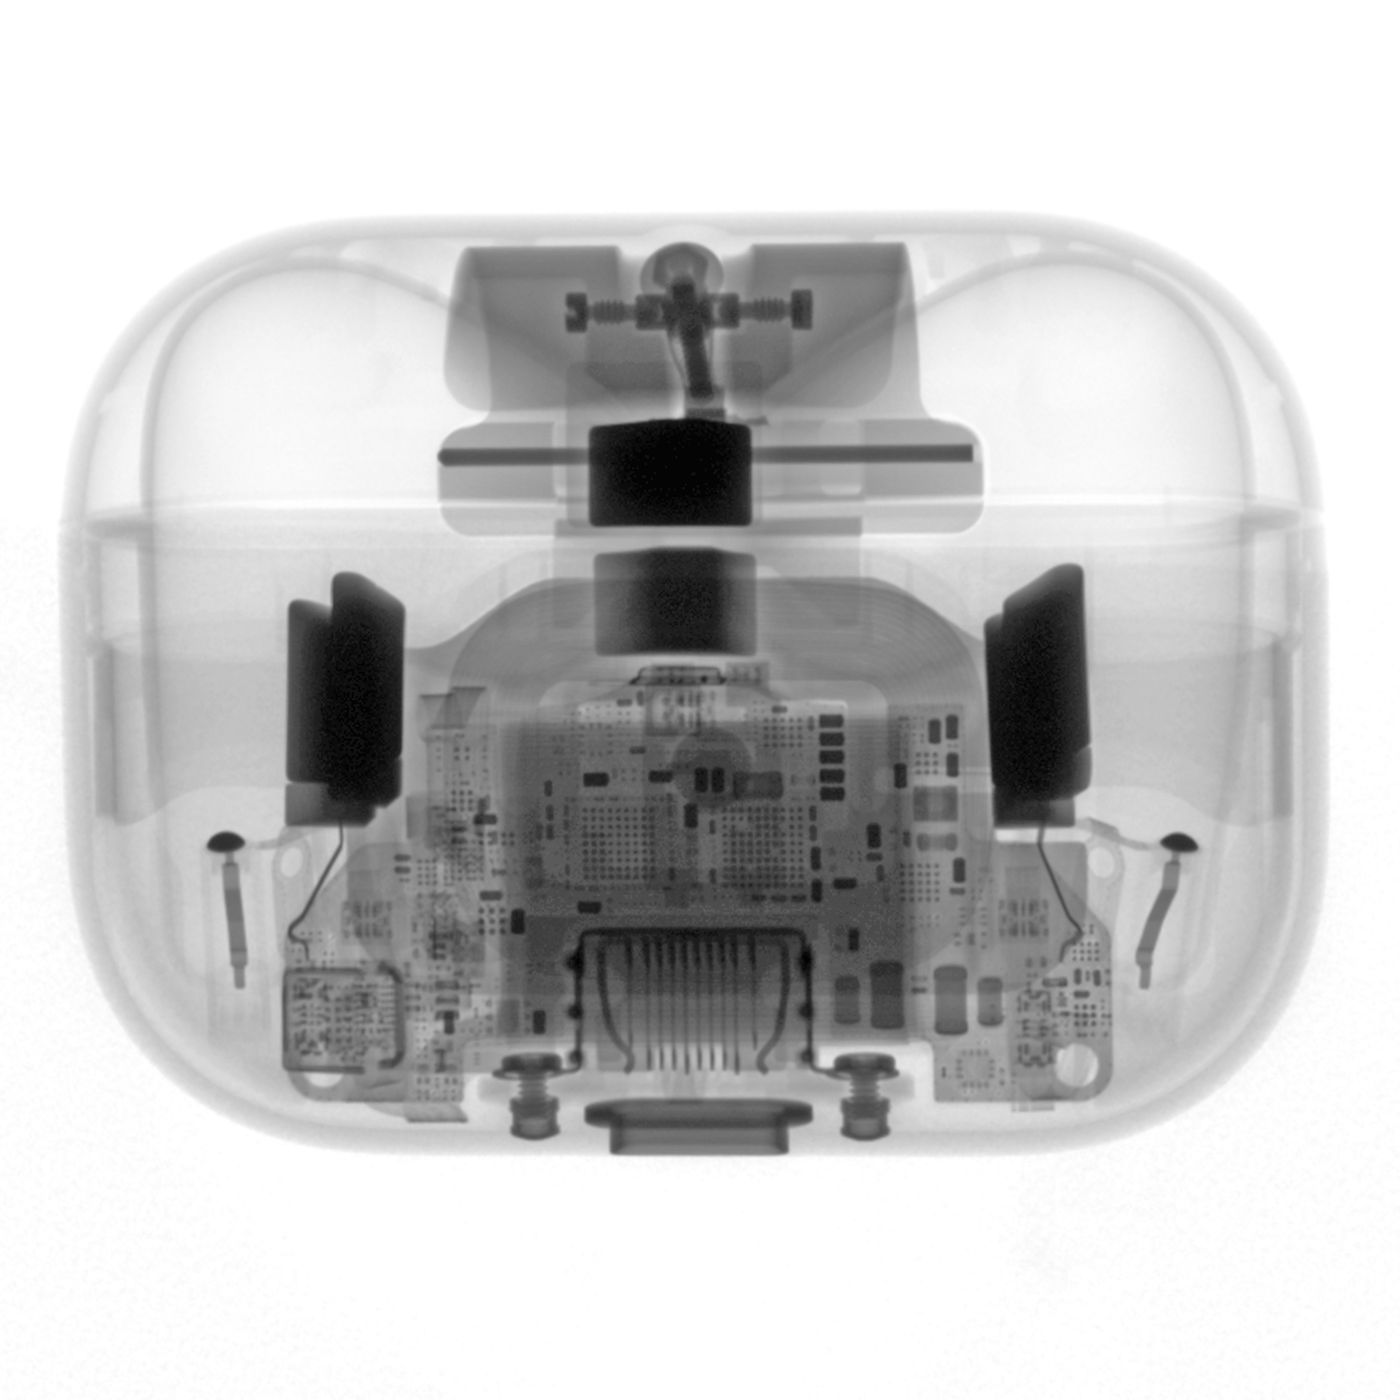 Airpods Pro Teardown Confirms That They Re Just As Disposable As